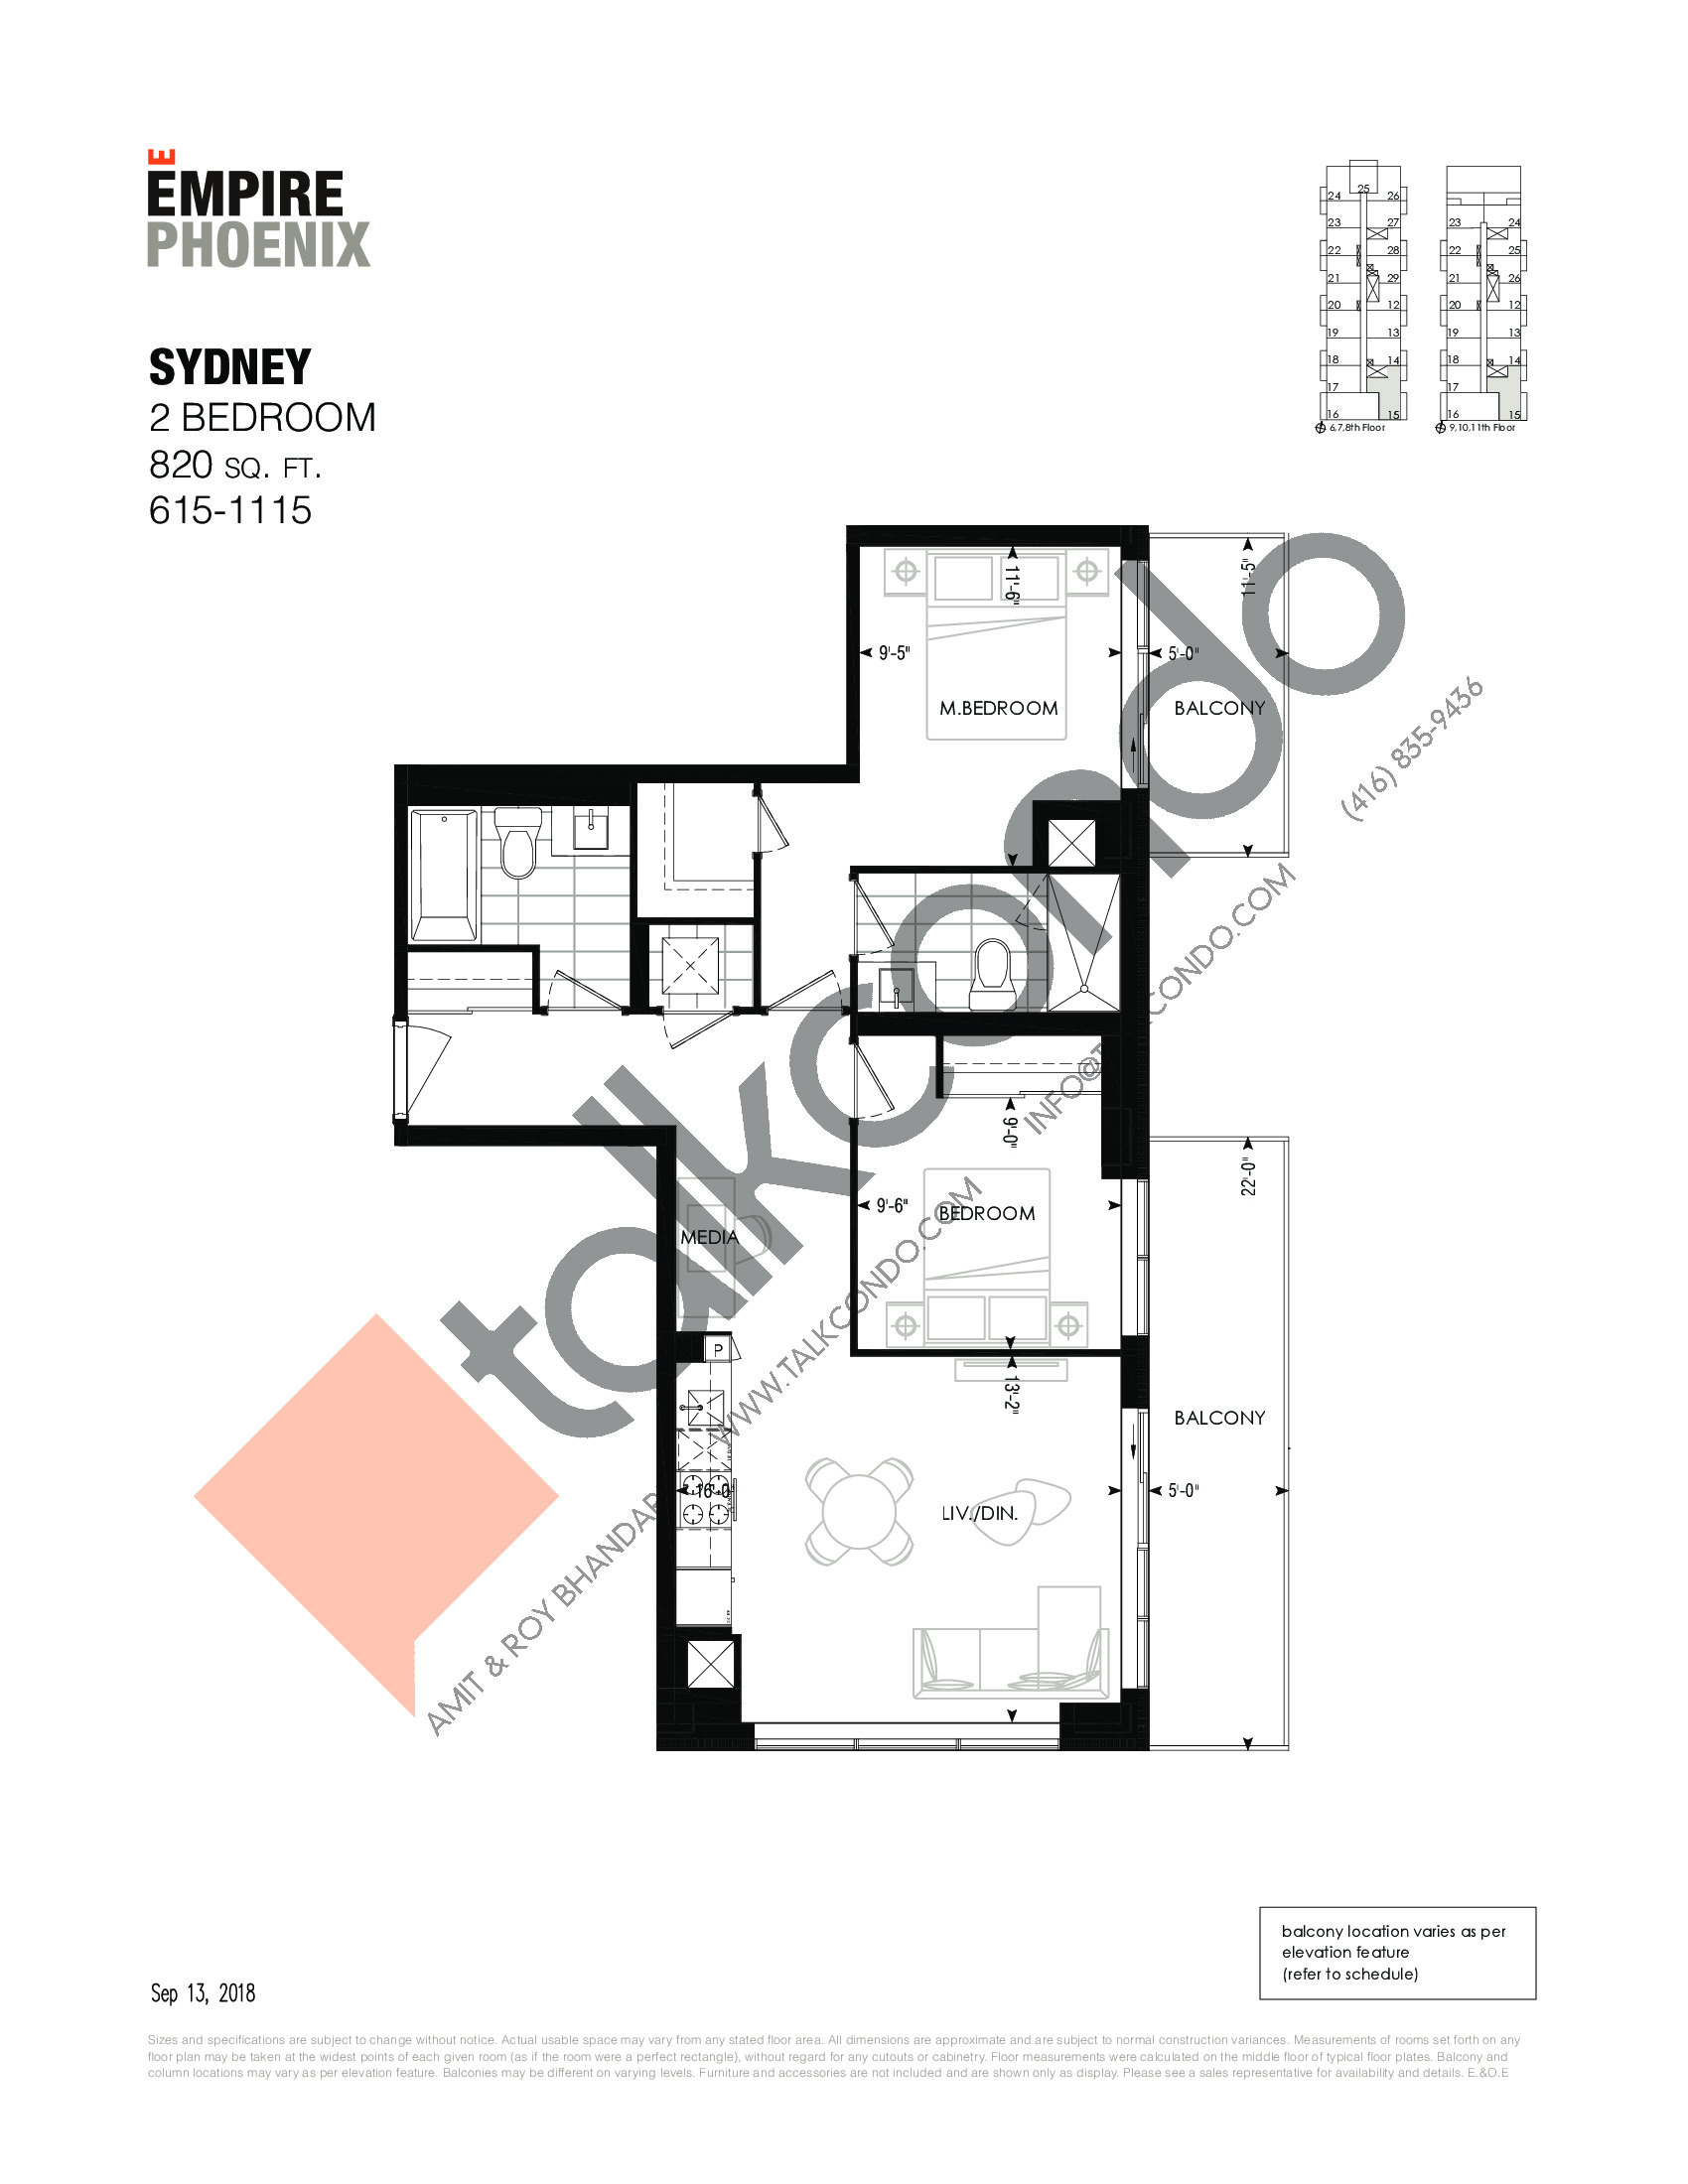 Sydney Floor Plan at Empire Phoenix Phase 2 Condos - 820 sq.ft